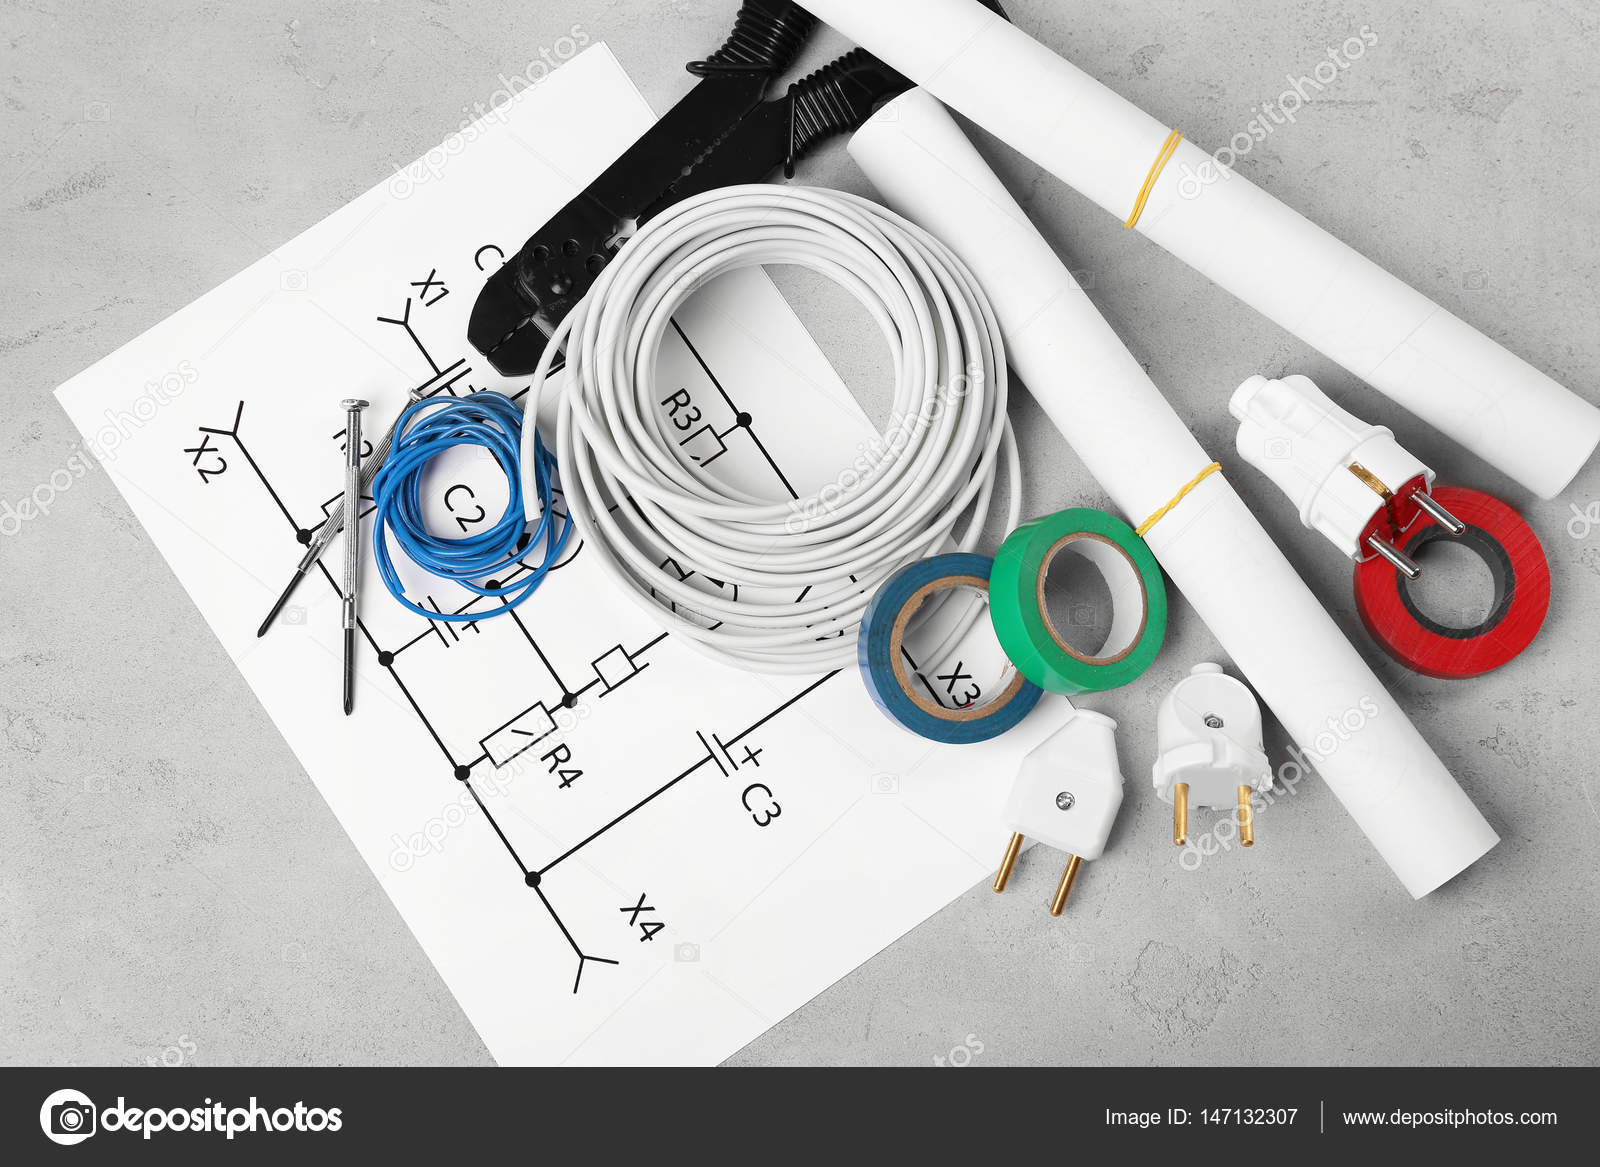 Electrician tools and schemes Stock Photo belchonock 147132307